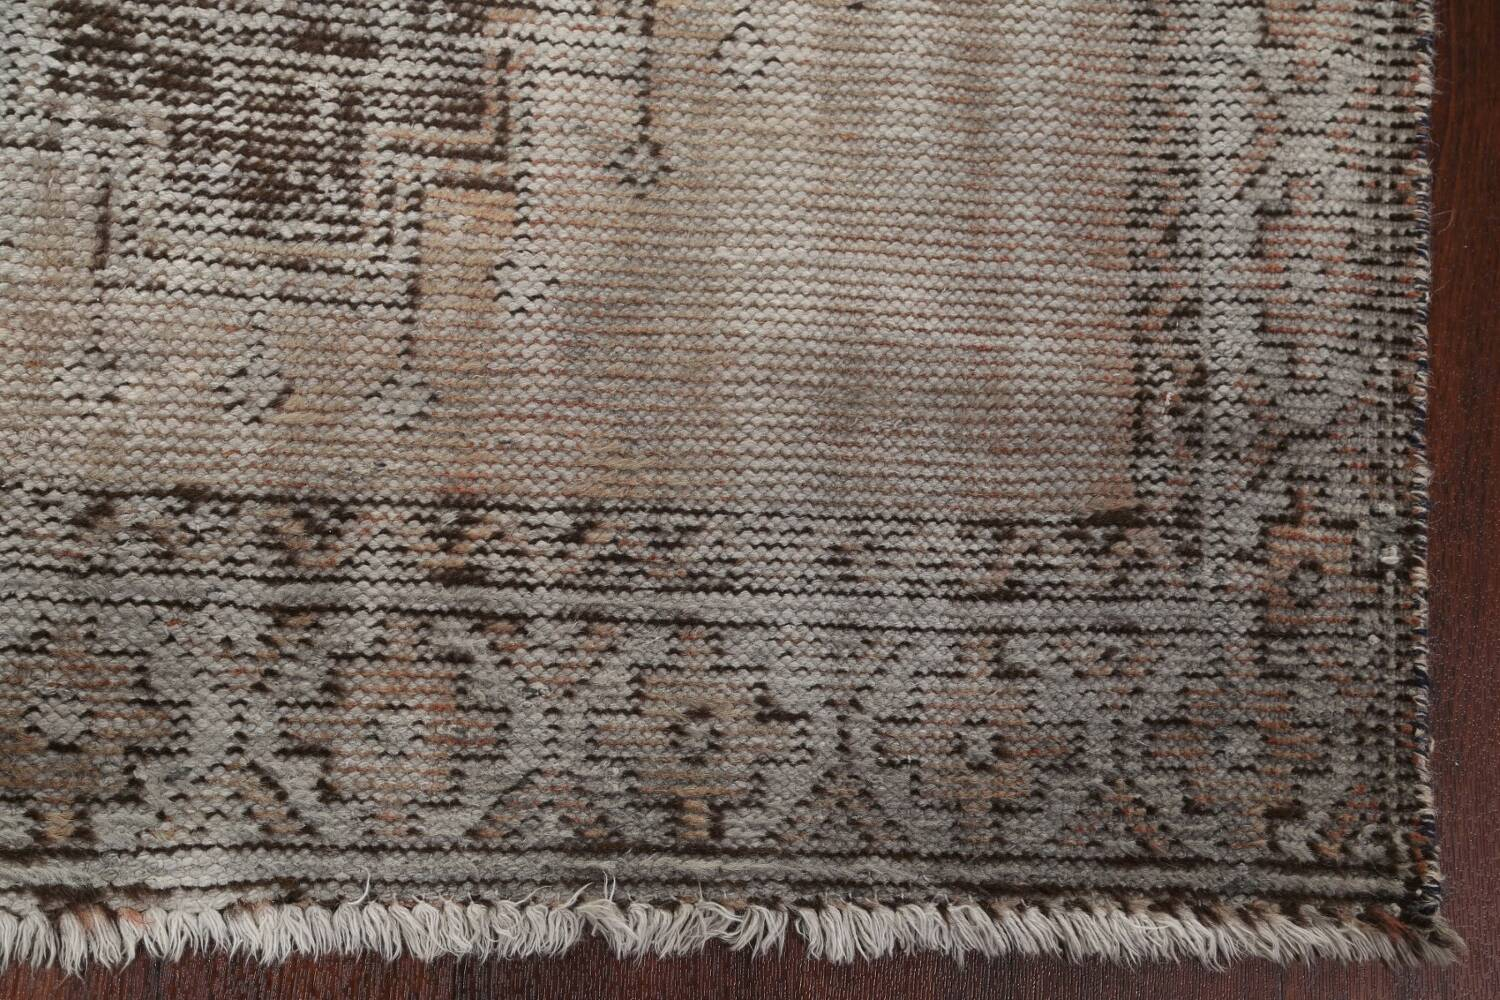 Antique Distressed Balouch Persian Area Rug 4x7 image 7